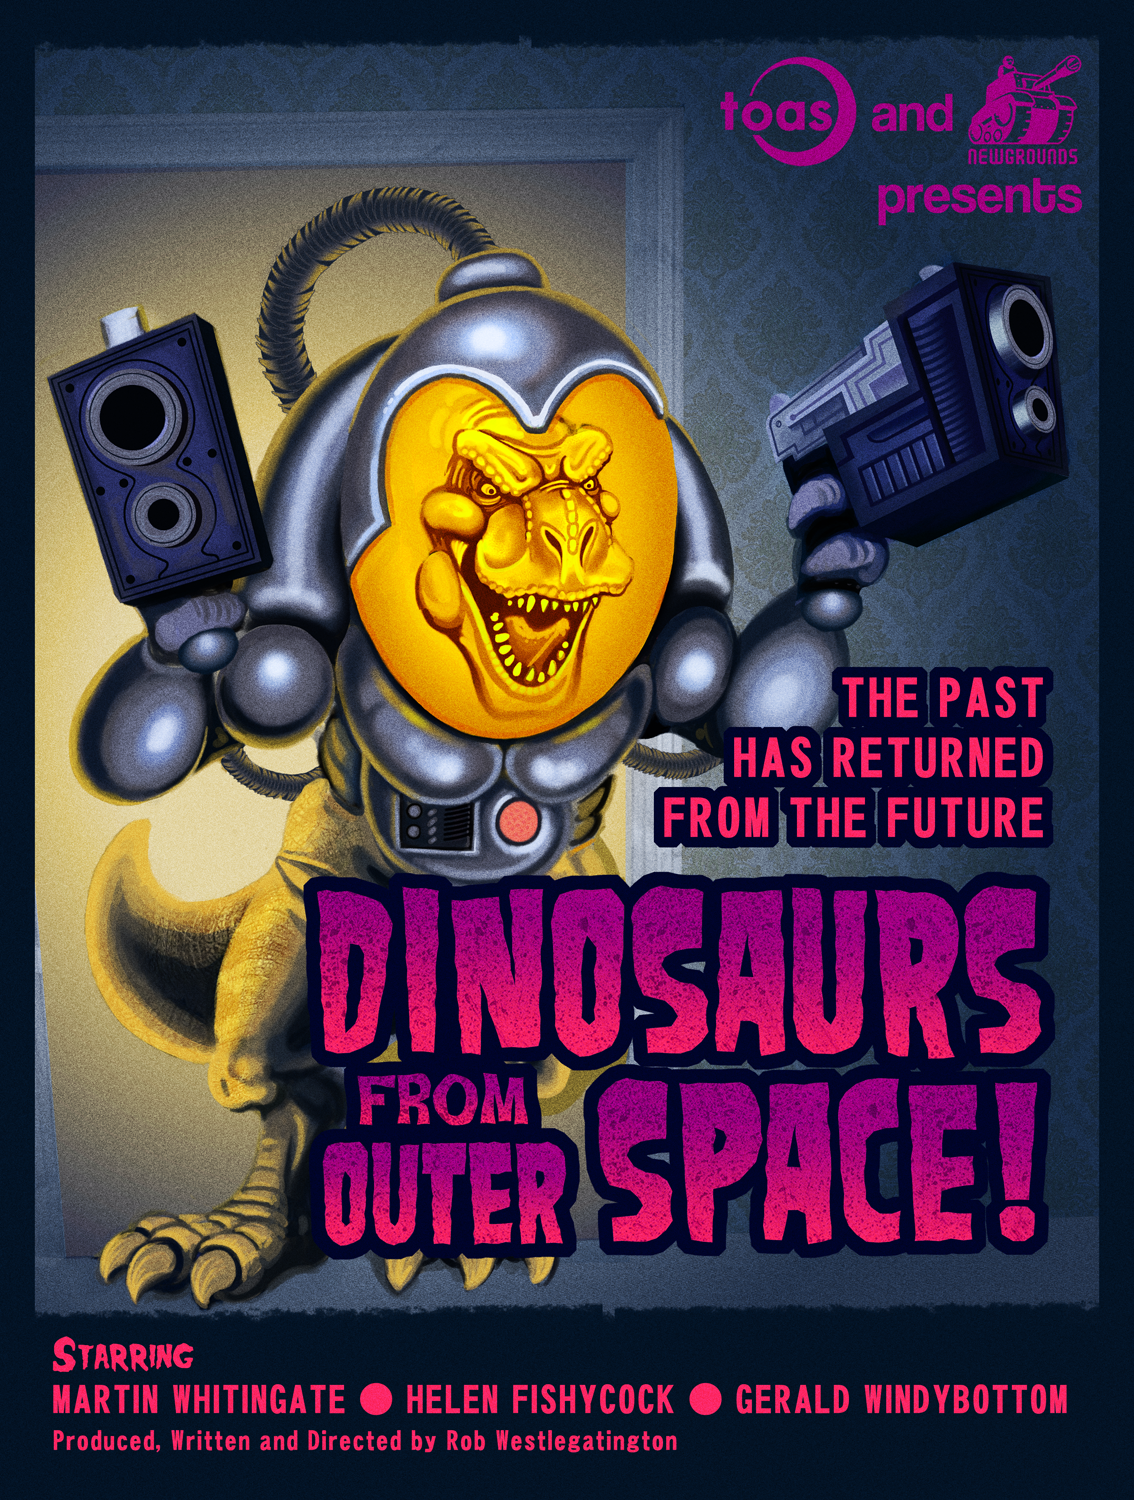 Dinosaurs From Outer Space!